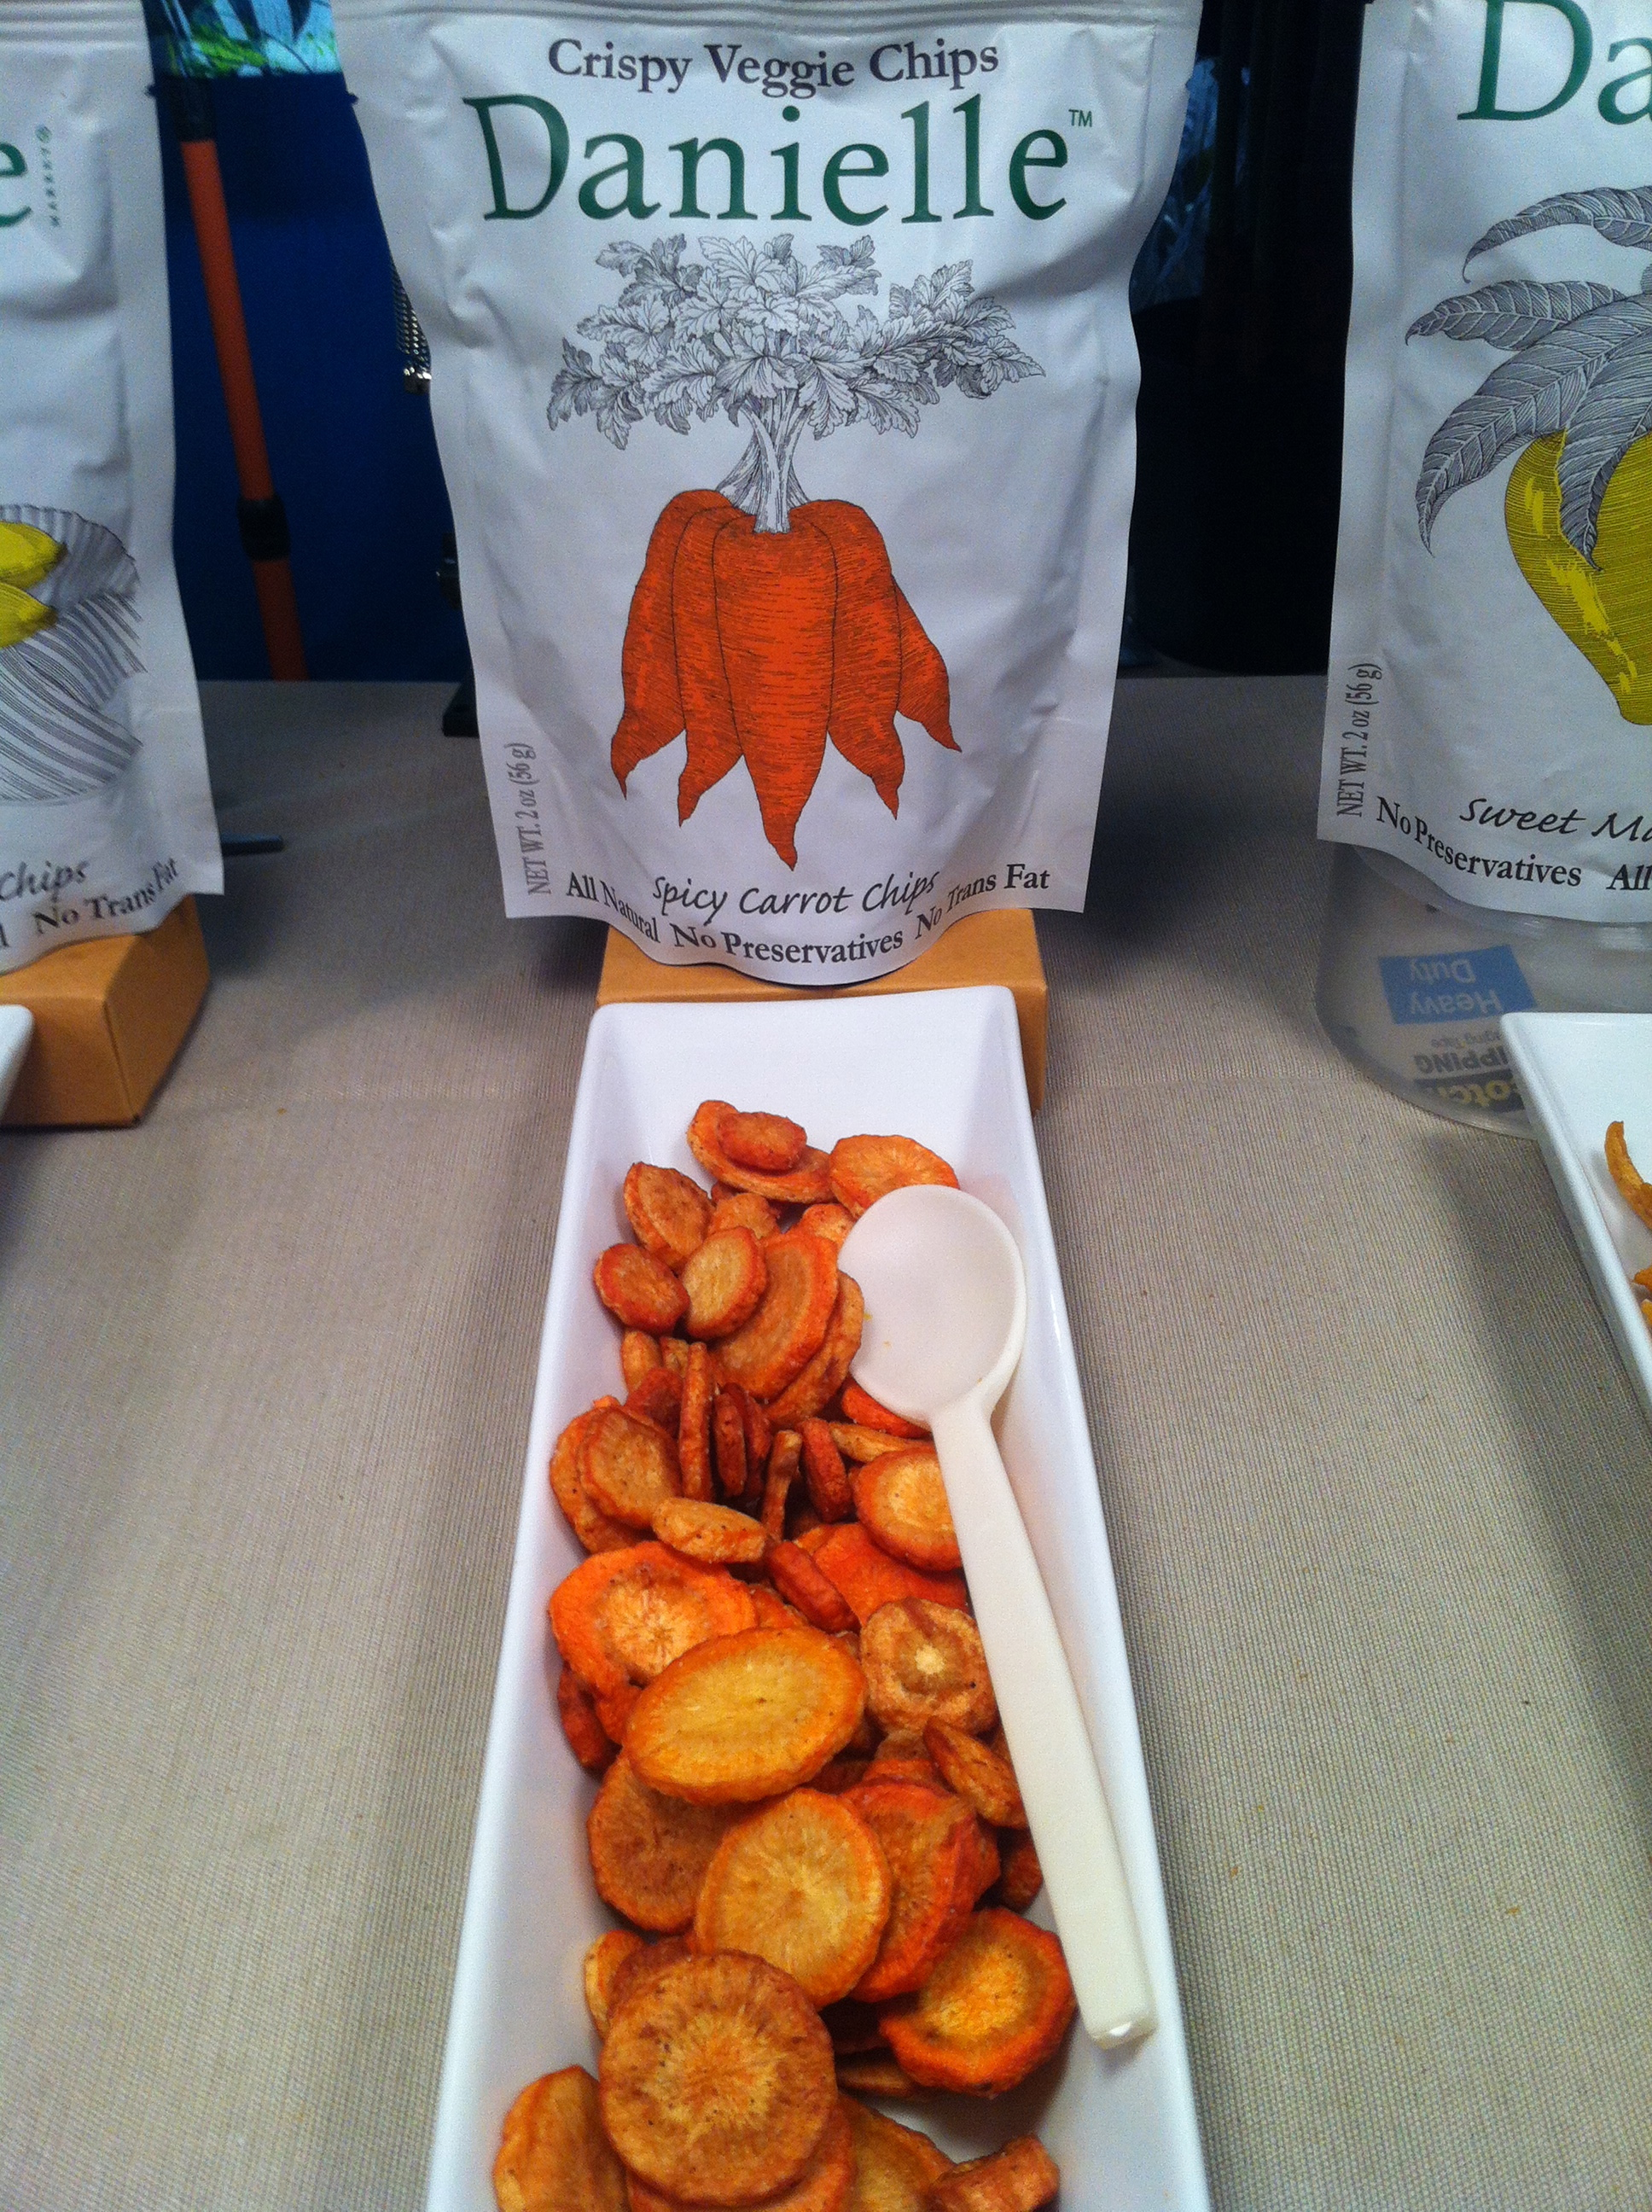 Great range of real vegetable chips from Danielle